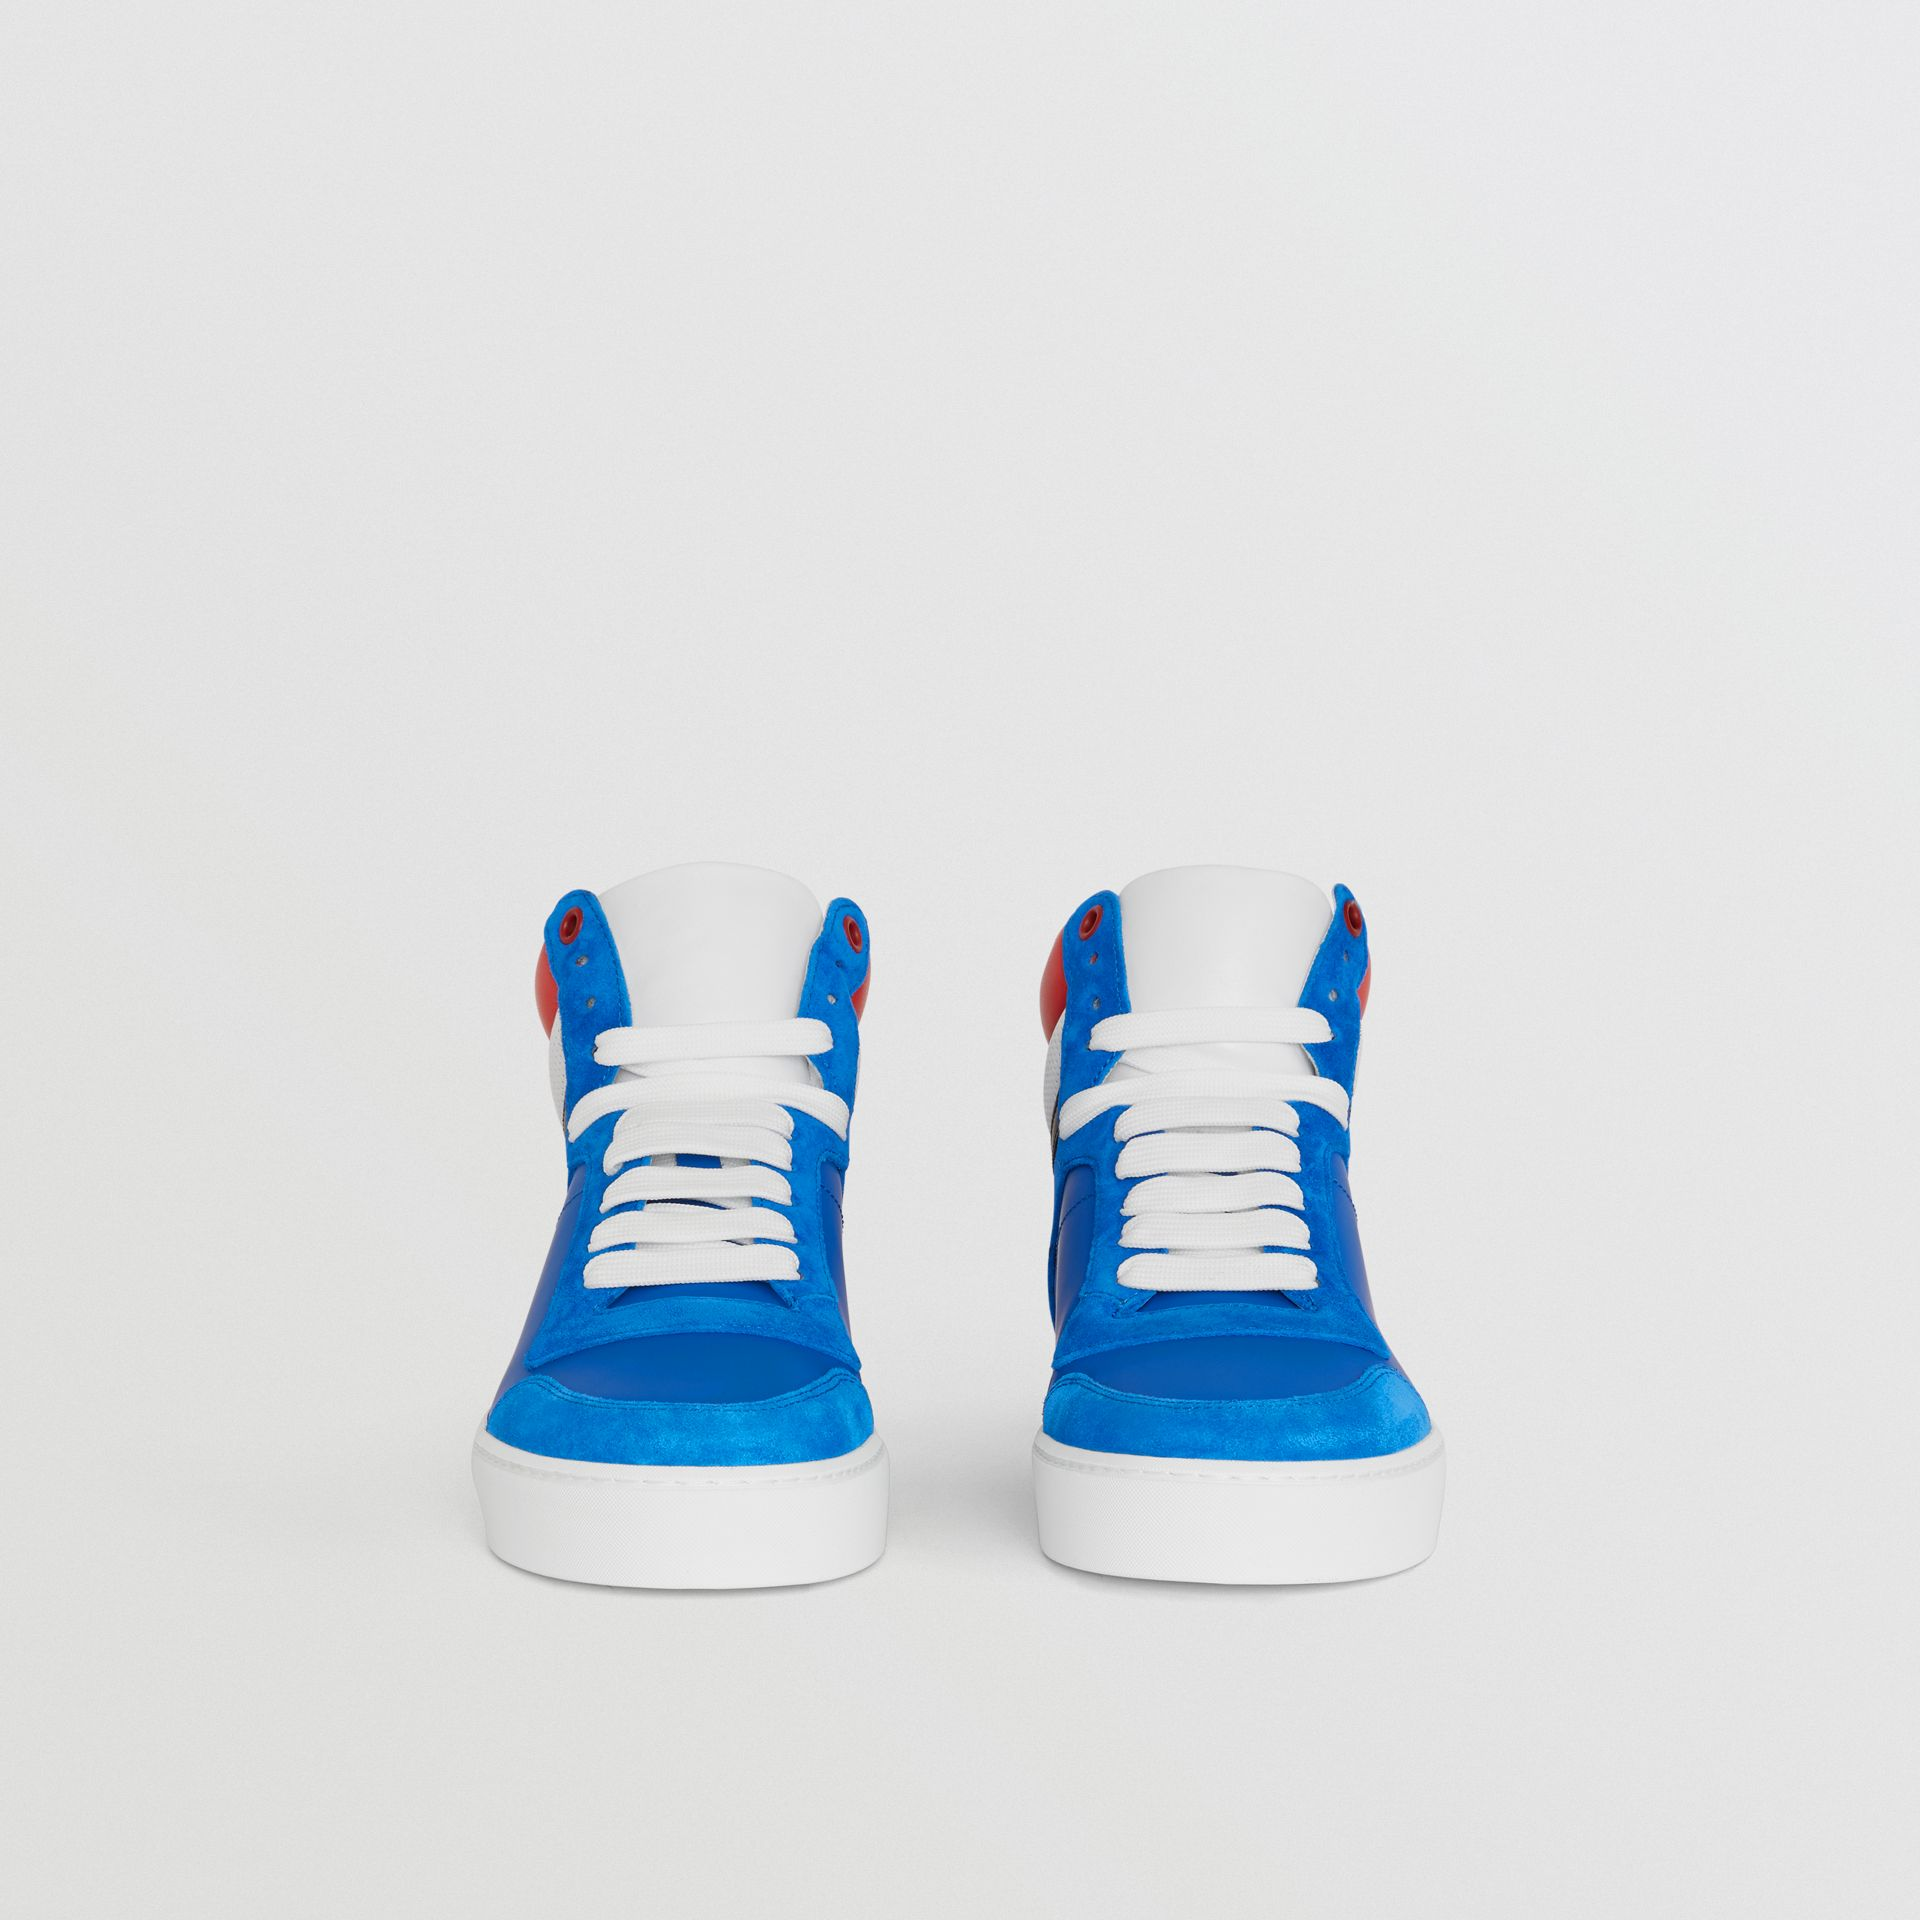 Leather and Suede High-top Sneakers in Bright Sky Blue - Women | Burberry United States - gallery image 3